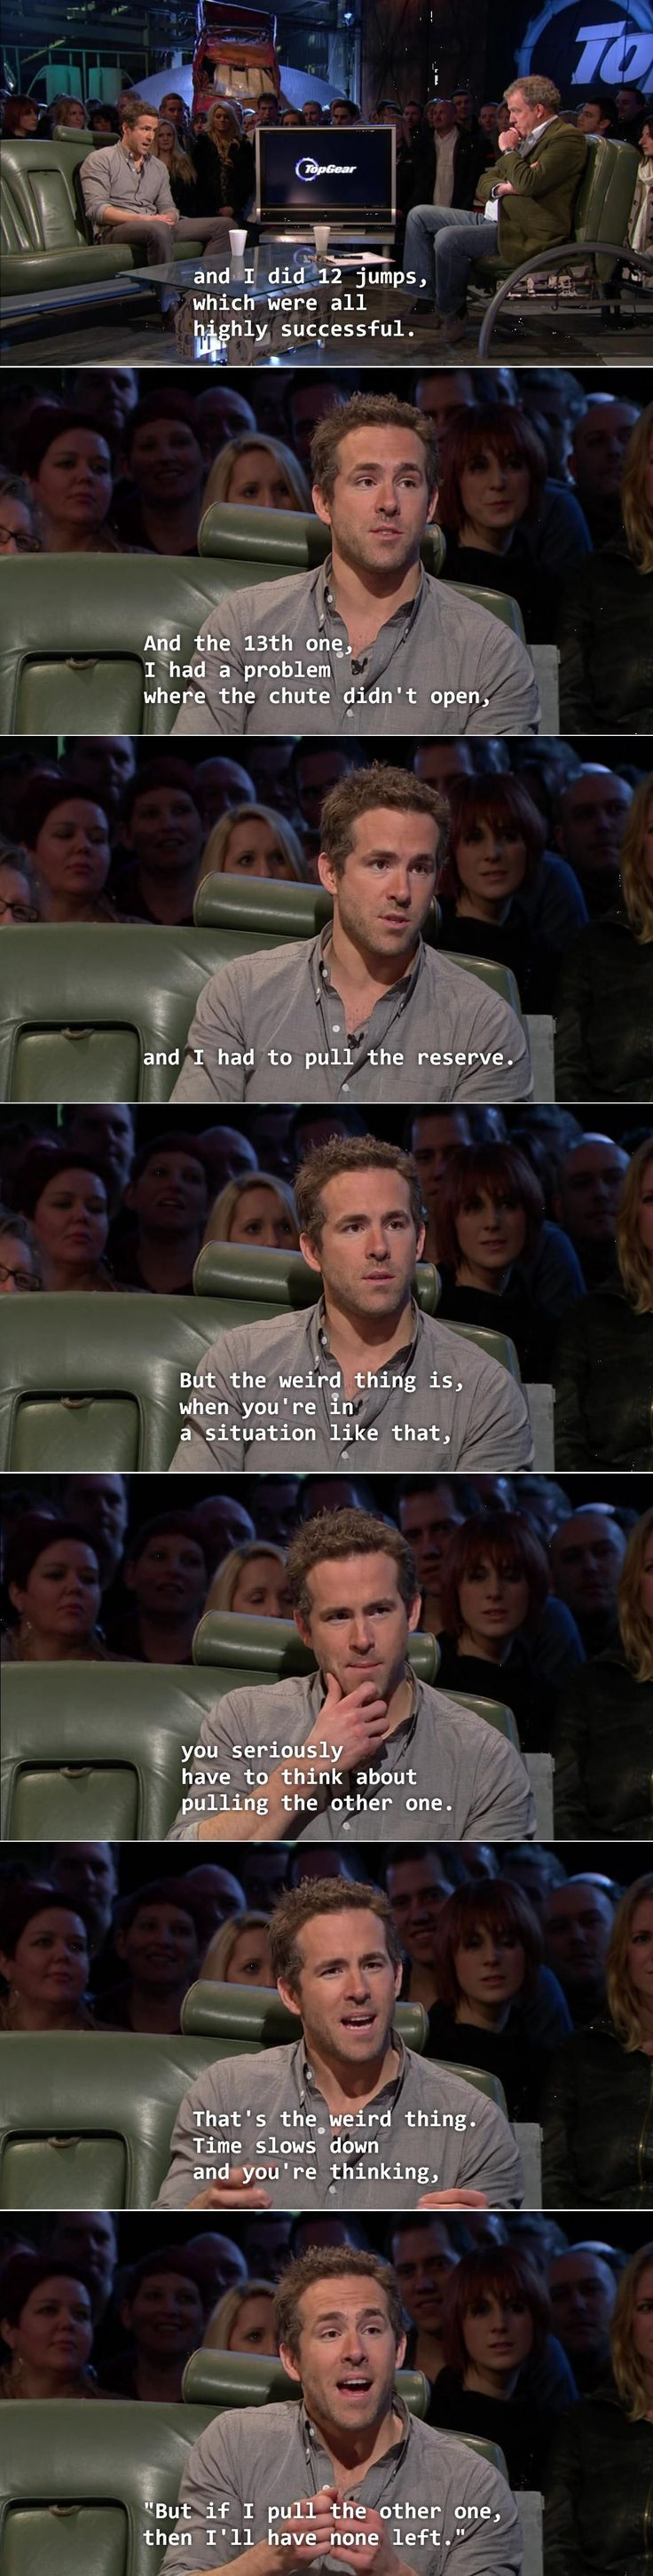 Best Ryan Reynolds Images On Pinterest Beautiful People - Ryan reynolds politely responds to fans dirty tweets and its just hilarious